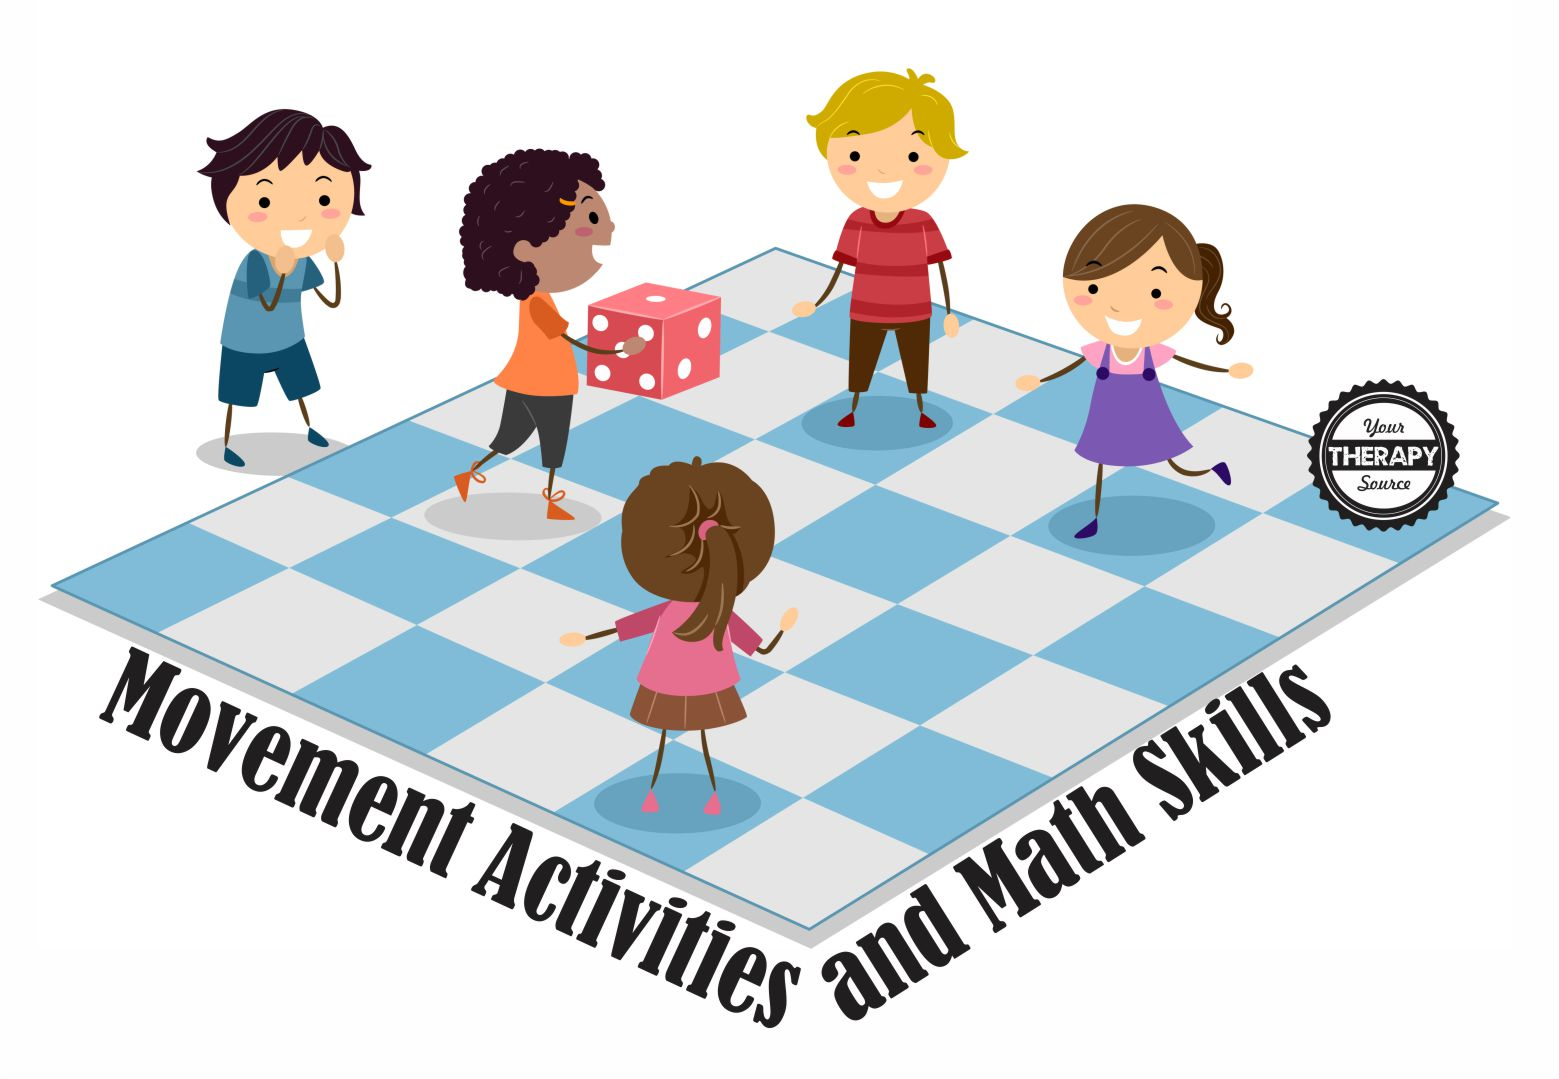 Movement Activities and Math Skills - Your Therapy Source